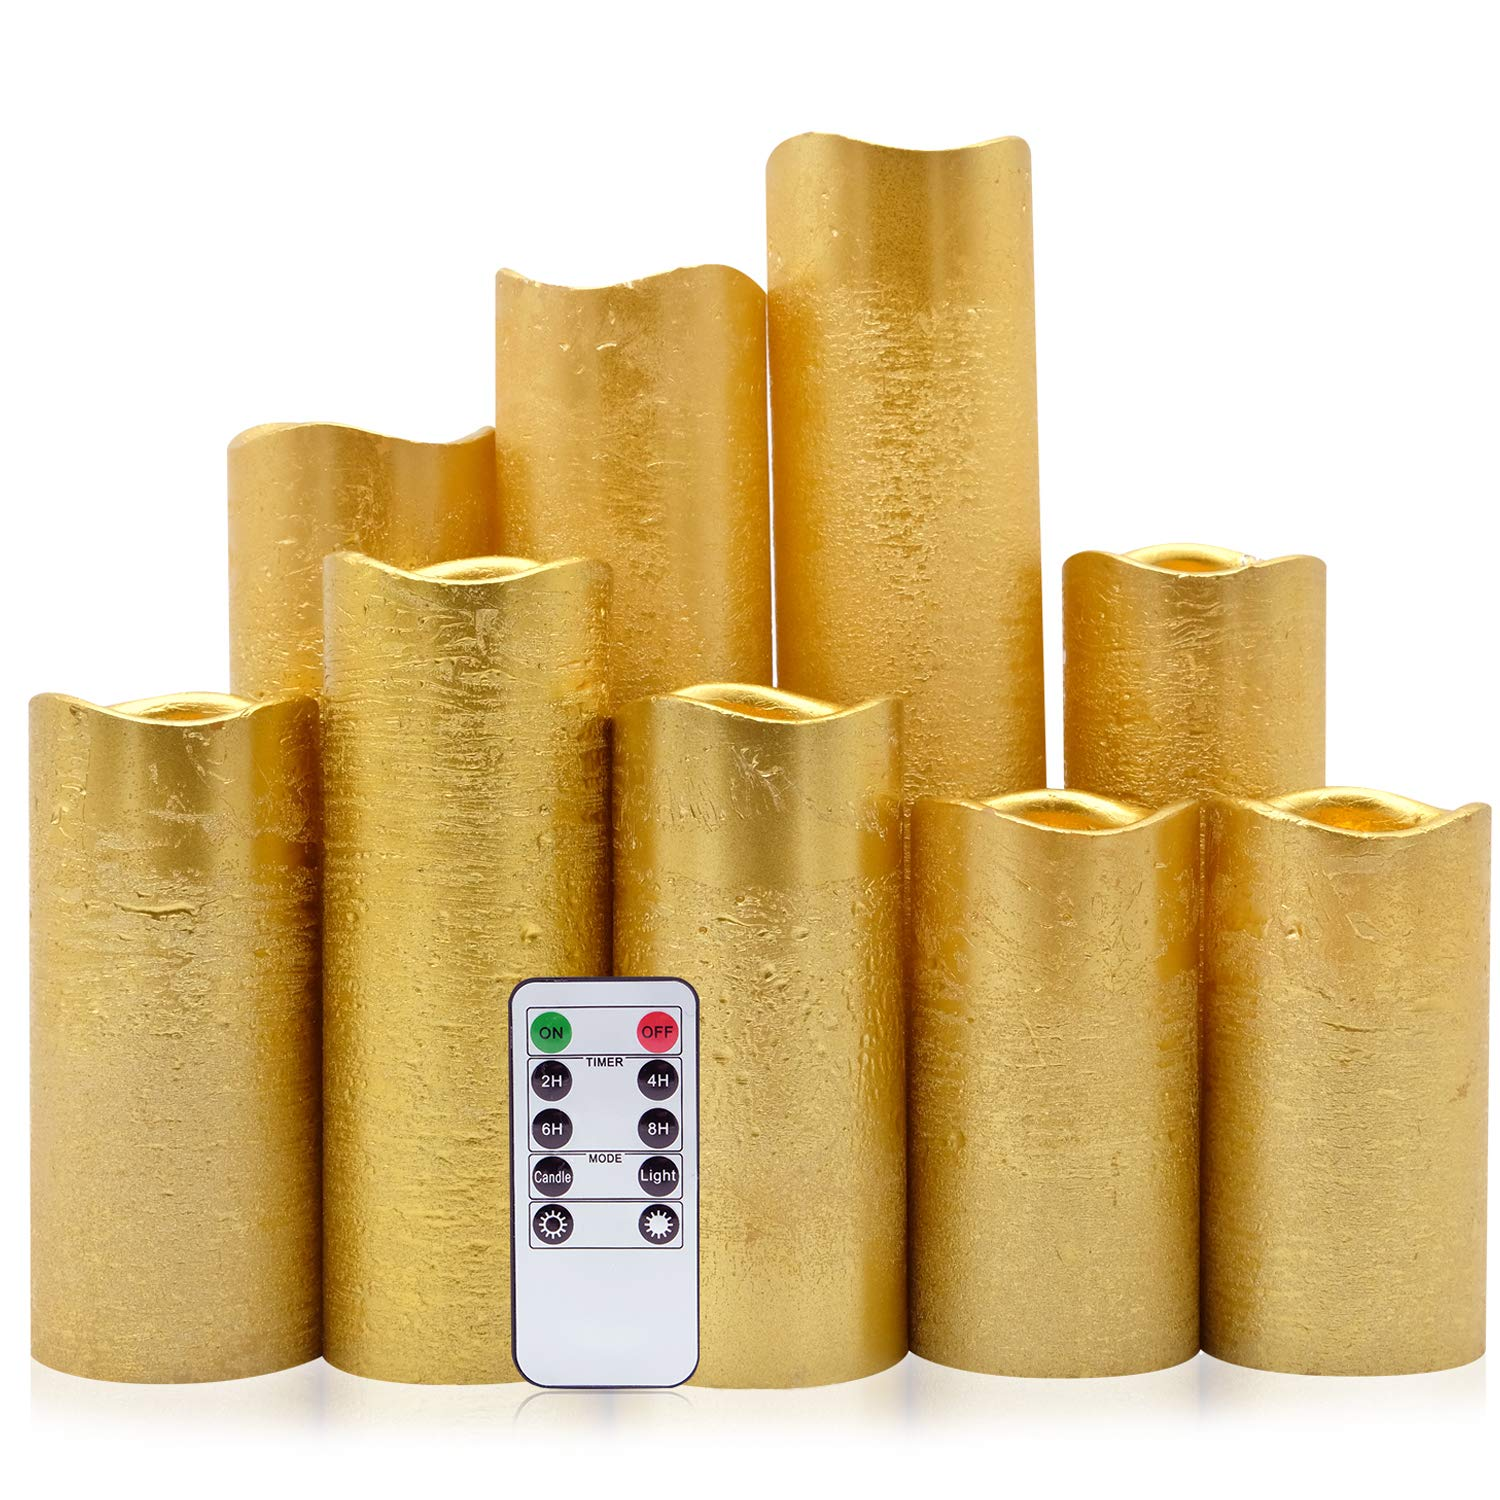 Eldnacele Flameless Candles Flickering LED Gold Coated Pillar Candles Set of 9(D2.2'' x H4'' 5'' 6'' 7'' 8'' 9'') Electric Unscented Real Wax Gold Rustic Battery Operated Candles with Remote Timer by Eldnacele